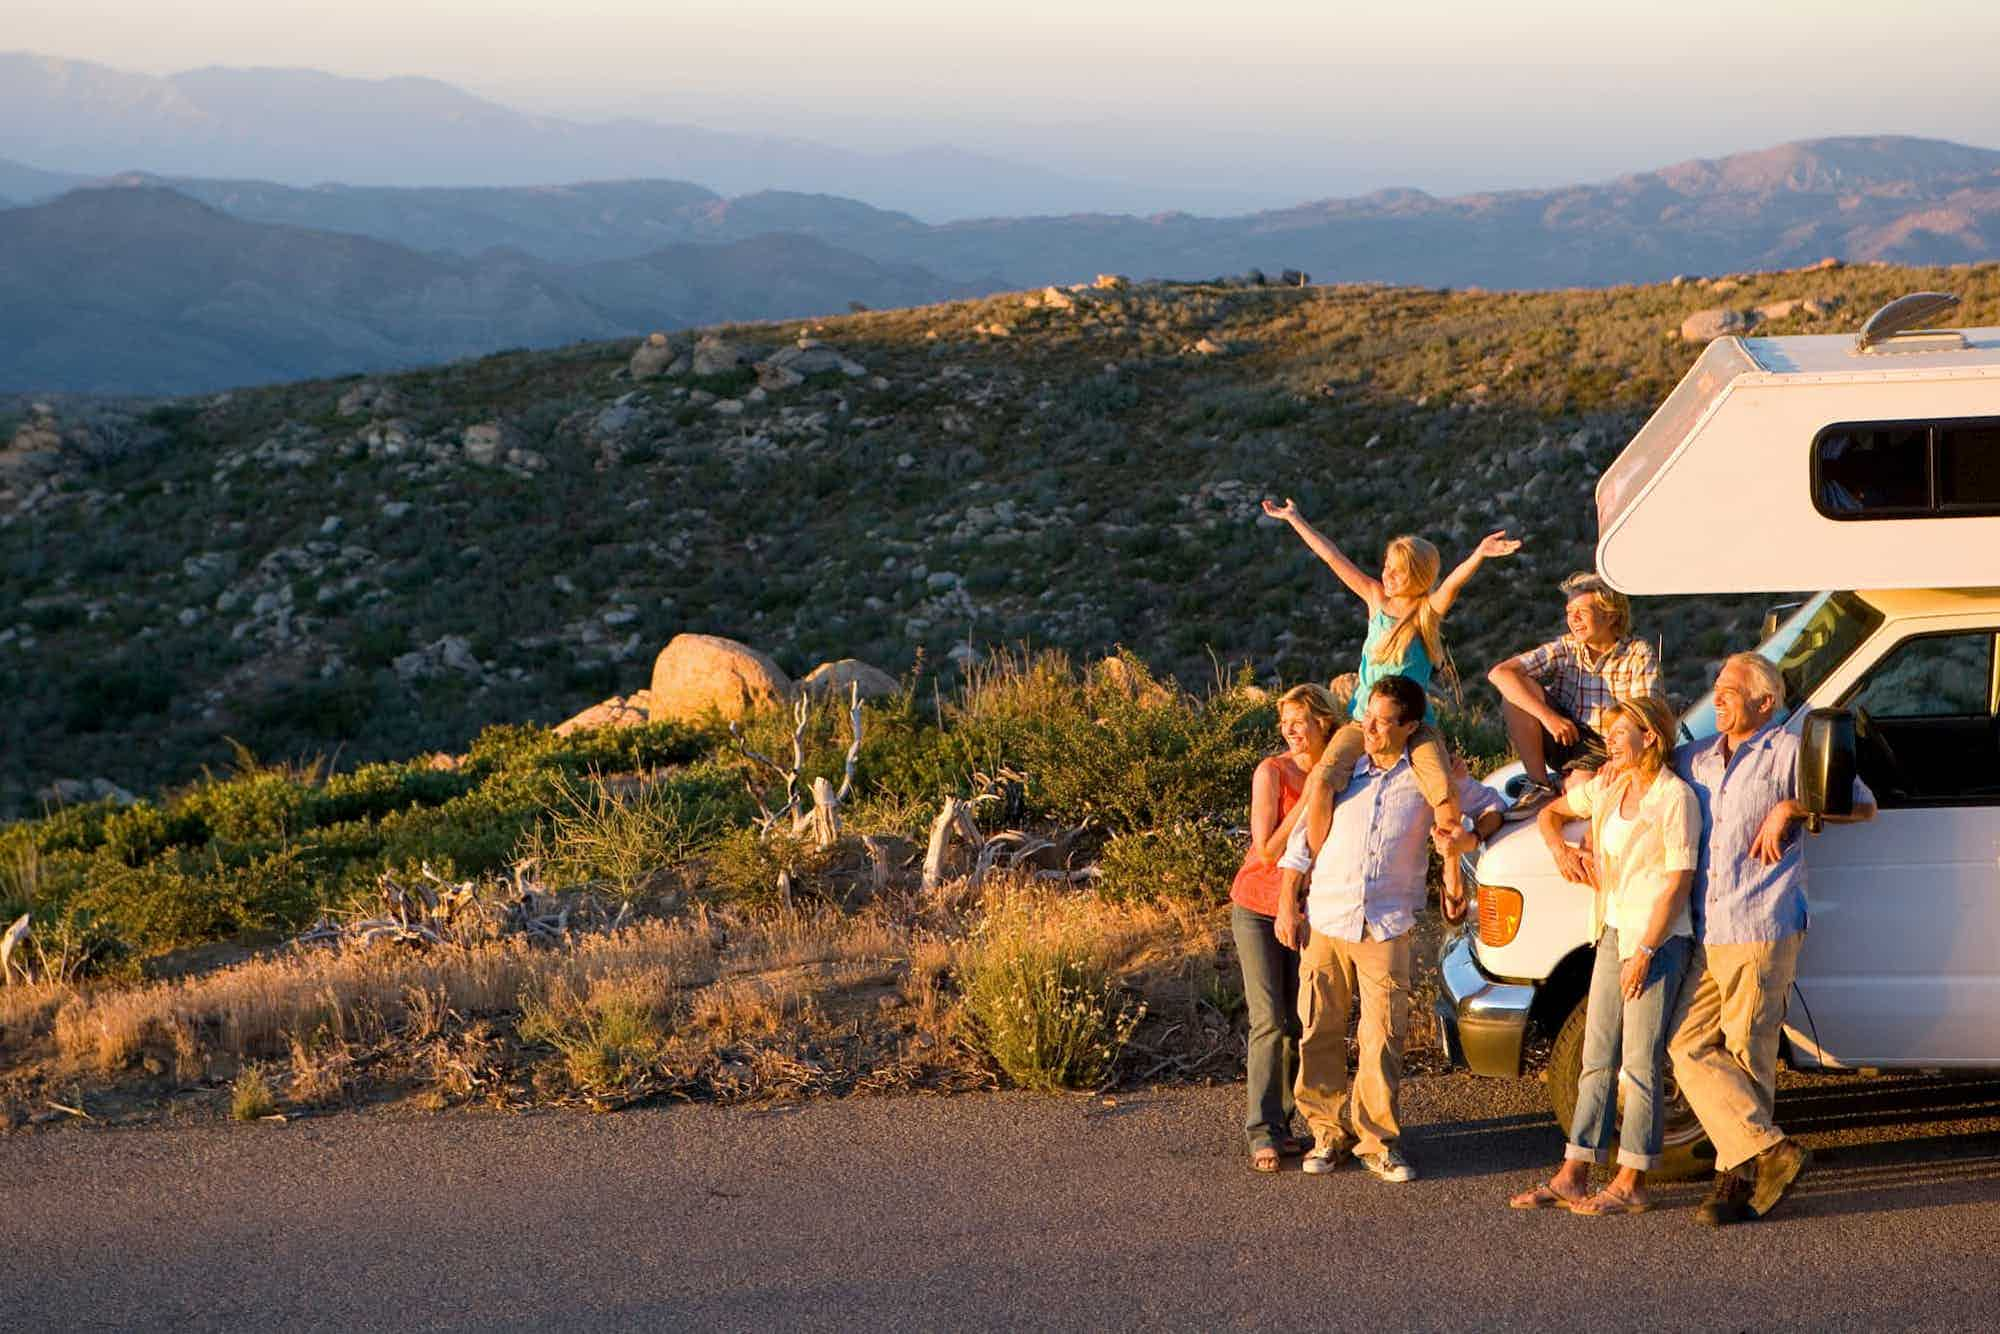 A big family watching sunset on the road in front of a campervan with mountains in the background